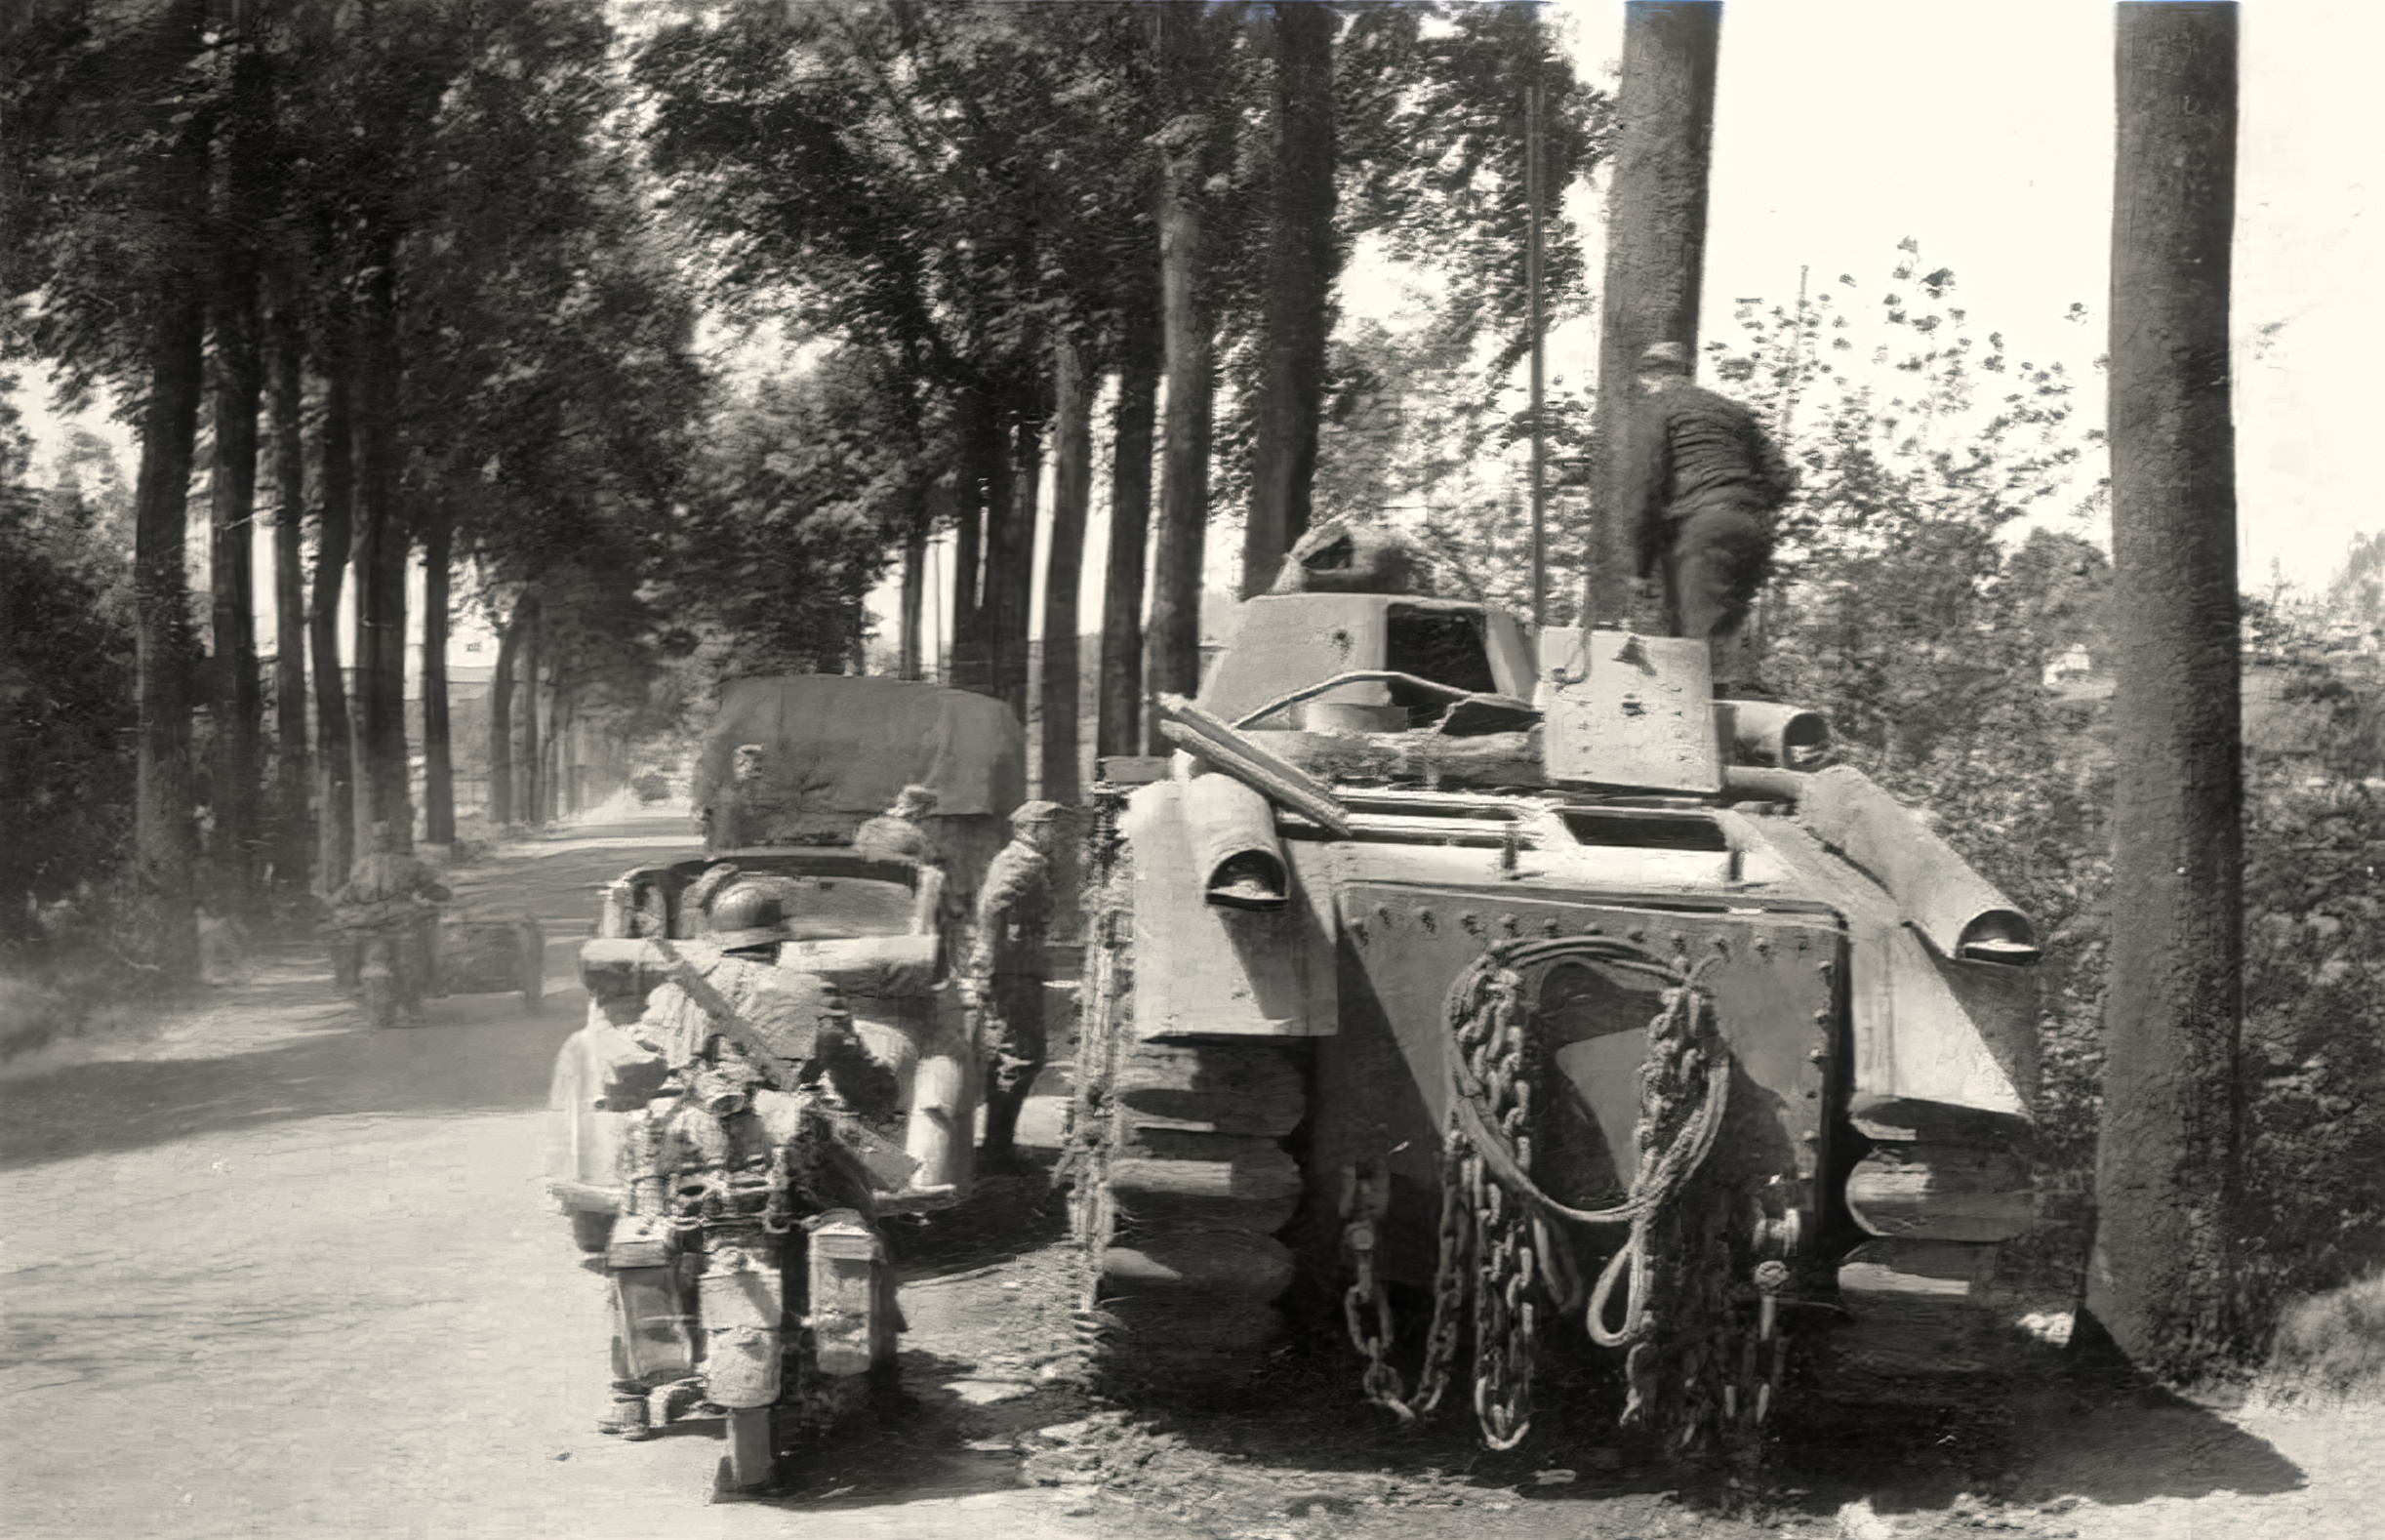 French Army Renault Char B1bis abandoned during the battle of France 1940 ebay 02